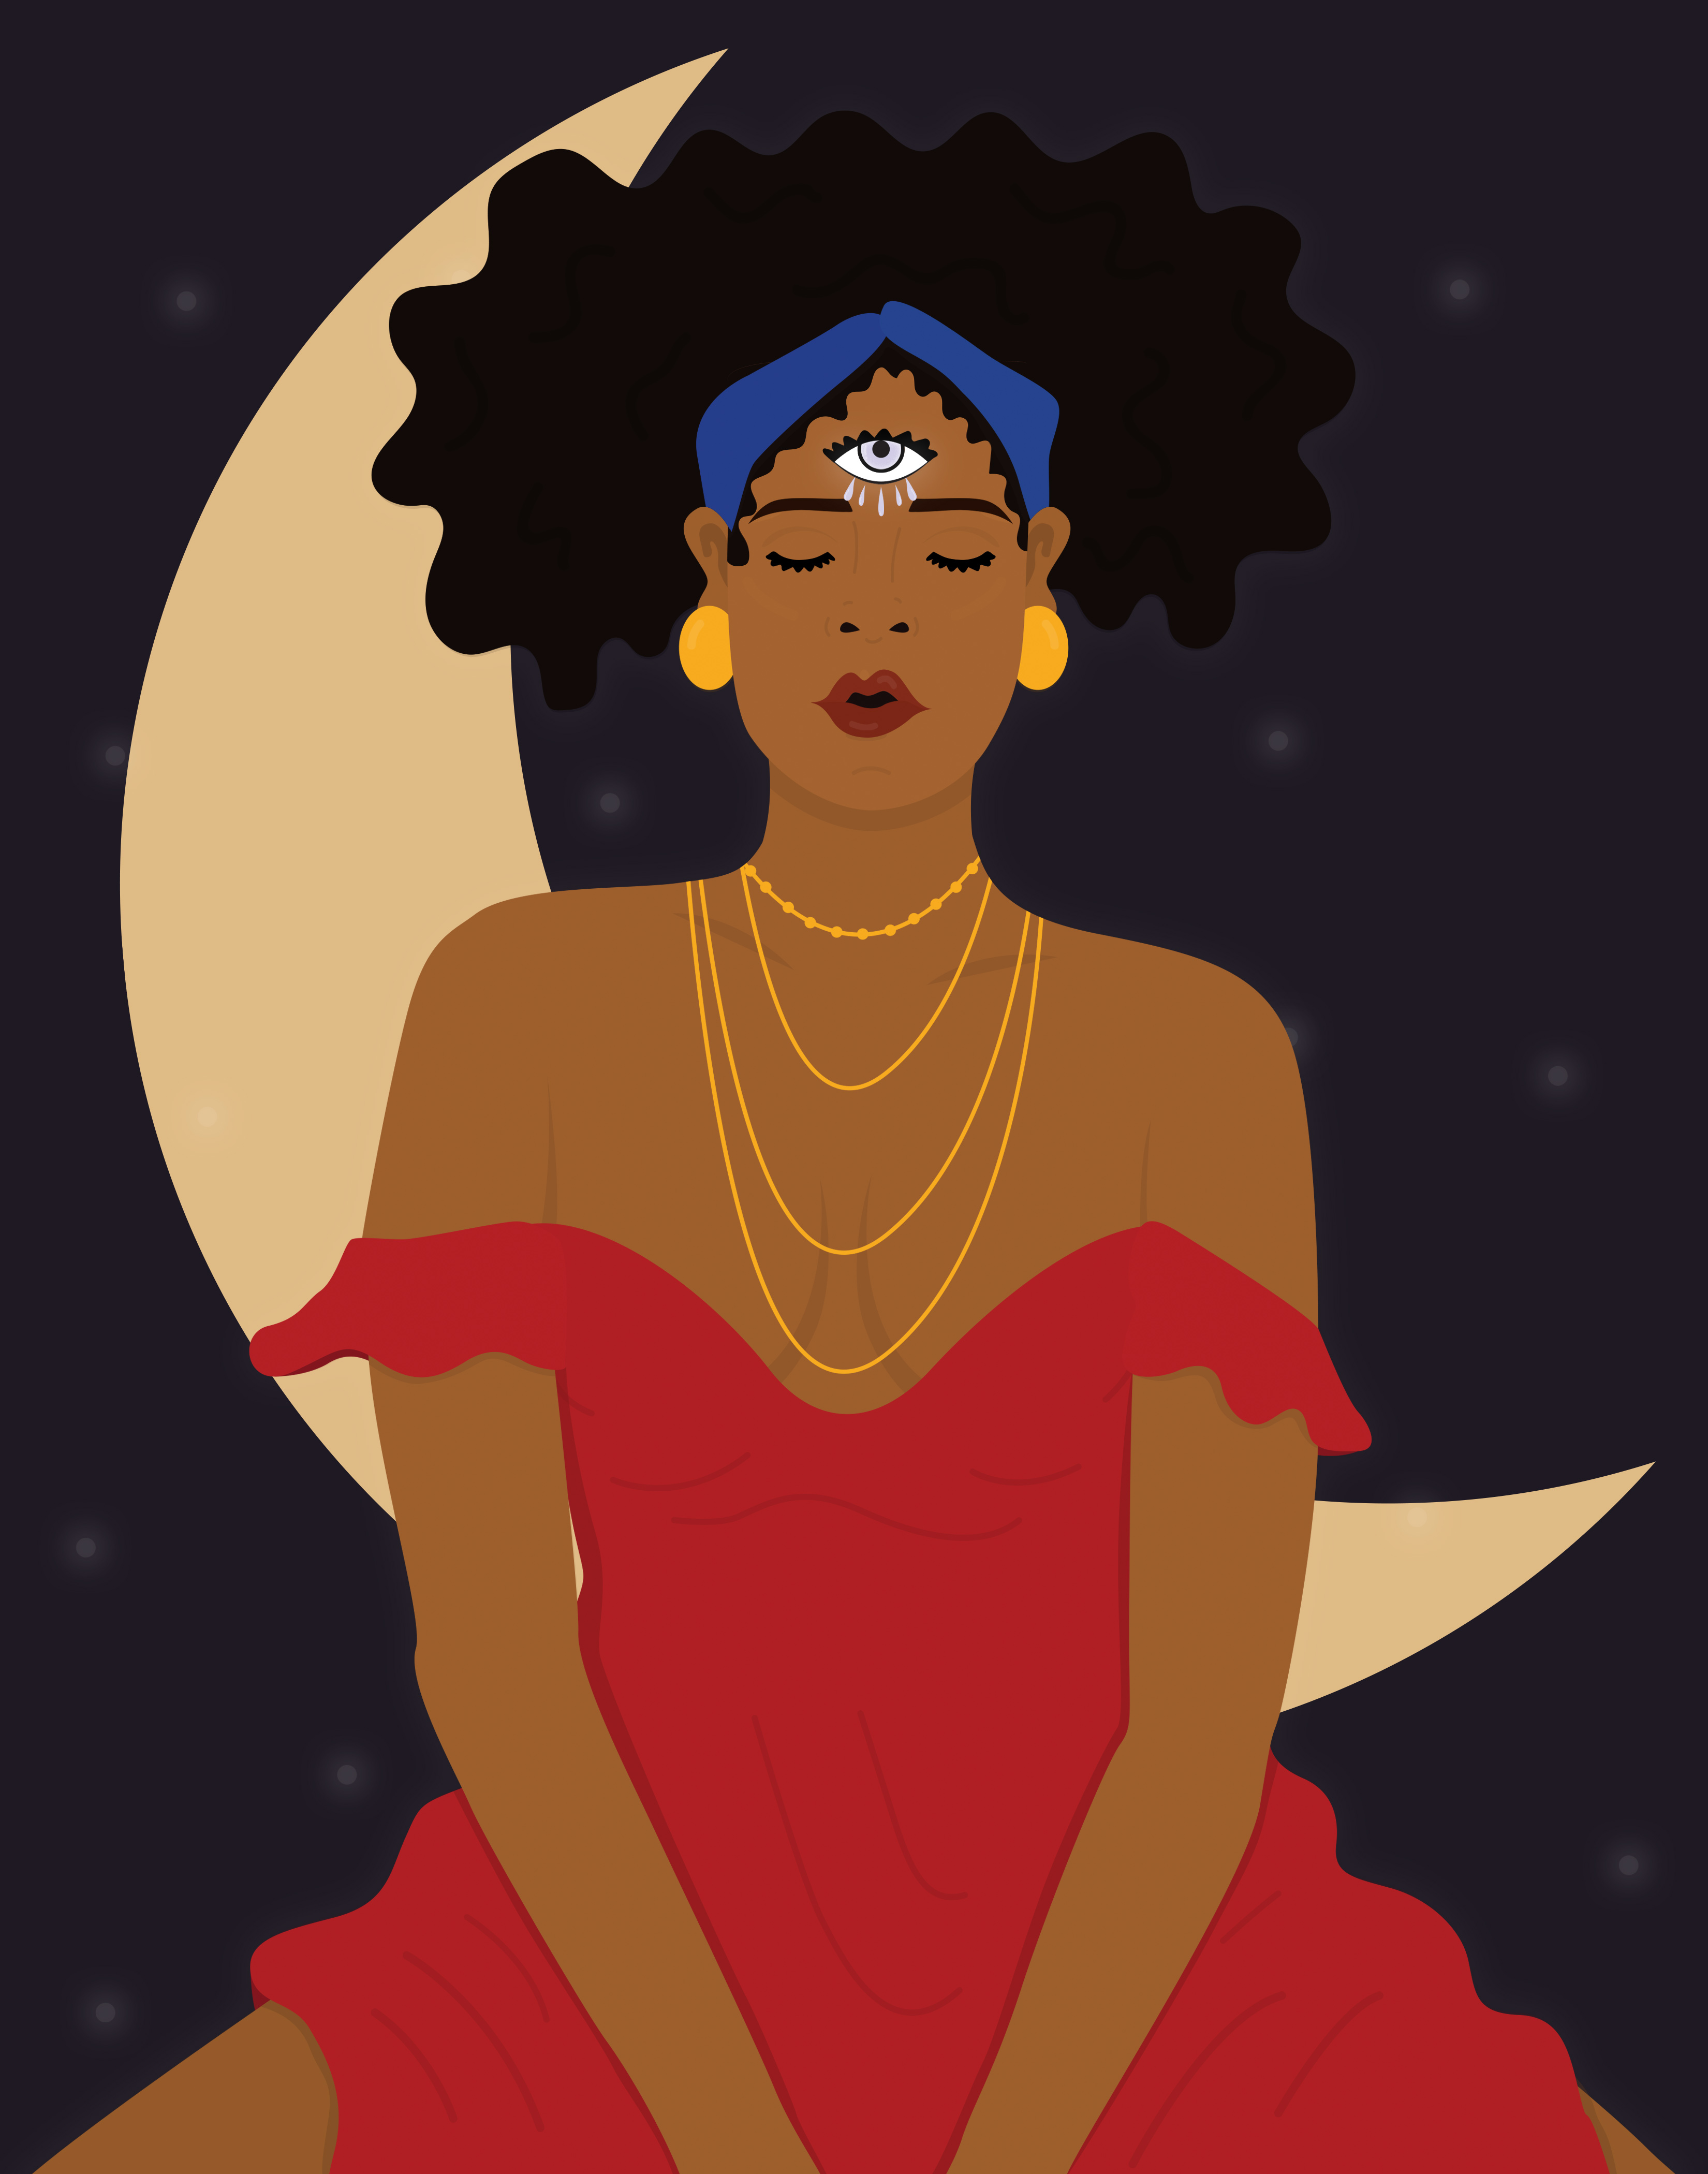 A woman in a red dress with her eyes closed and her third eye open sits in front of a yellow crescent moon.